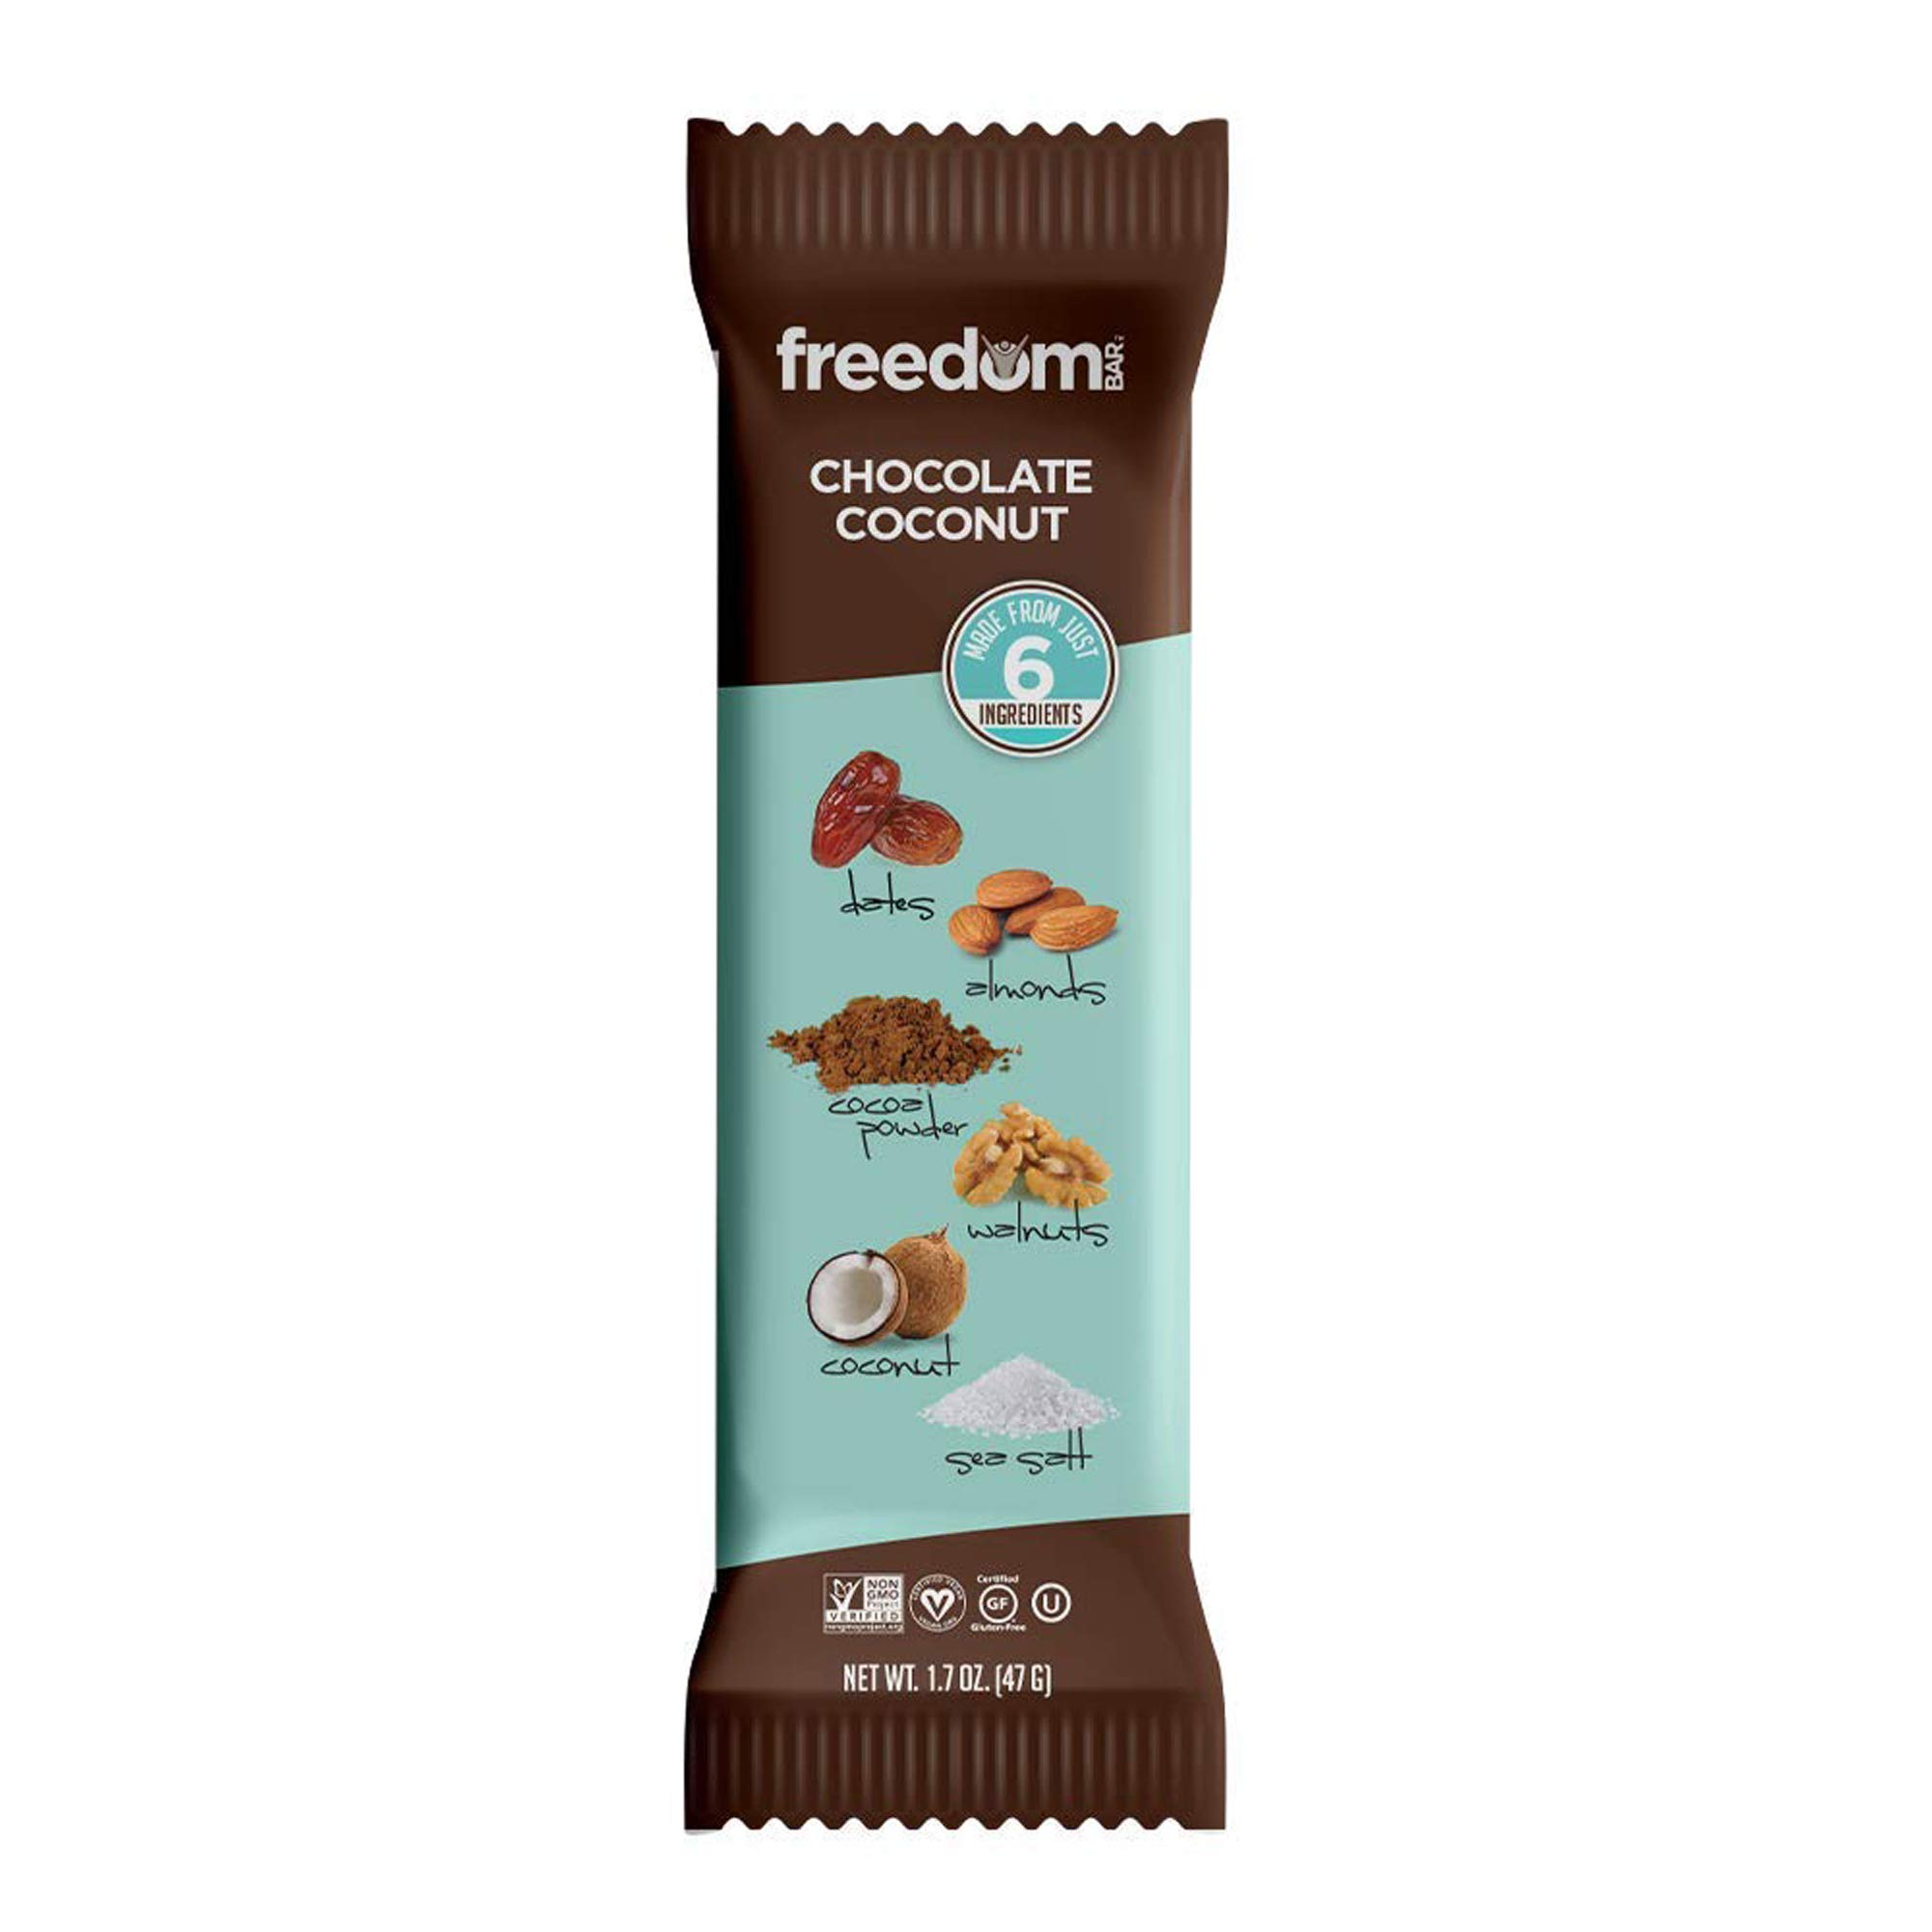 Freedom Bar, Healthy Fruit and Nut Bar - Dairy and Gluten Free, Organic Energy Snack, AIP Friendly and Kosher - 15 Bars, Chocolate Coconut Flavor